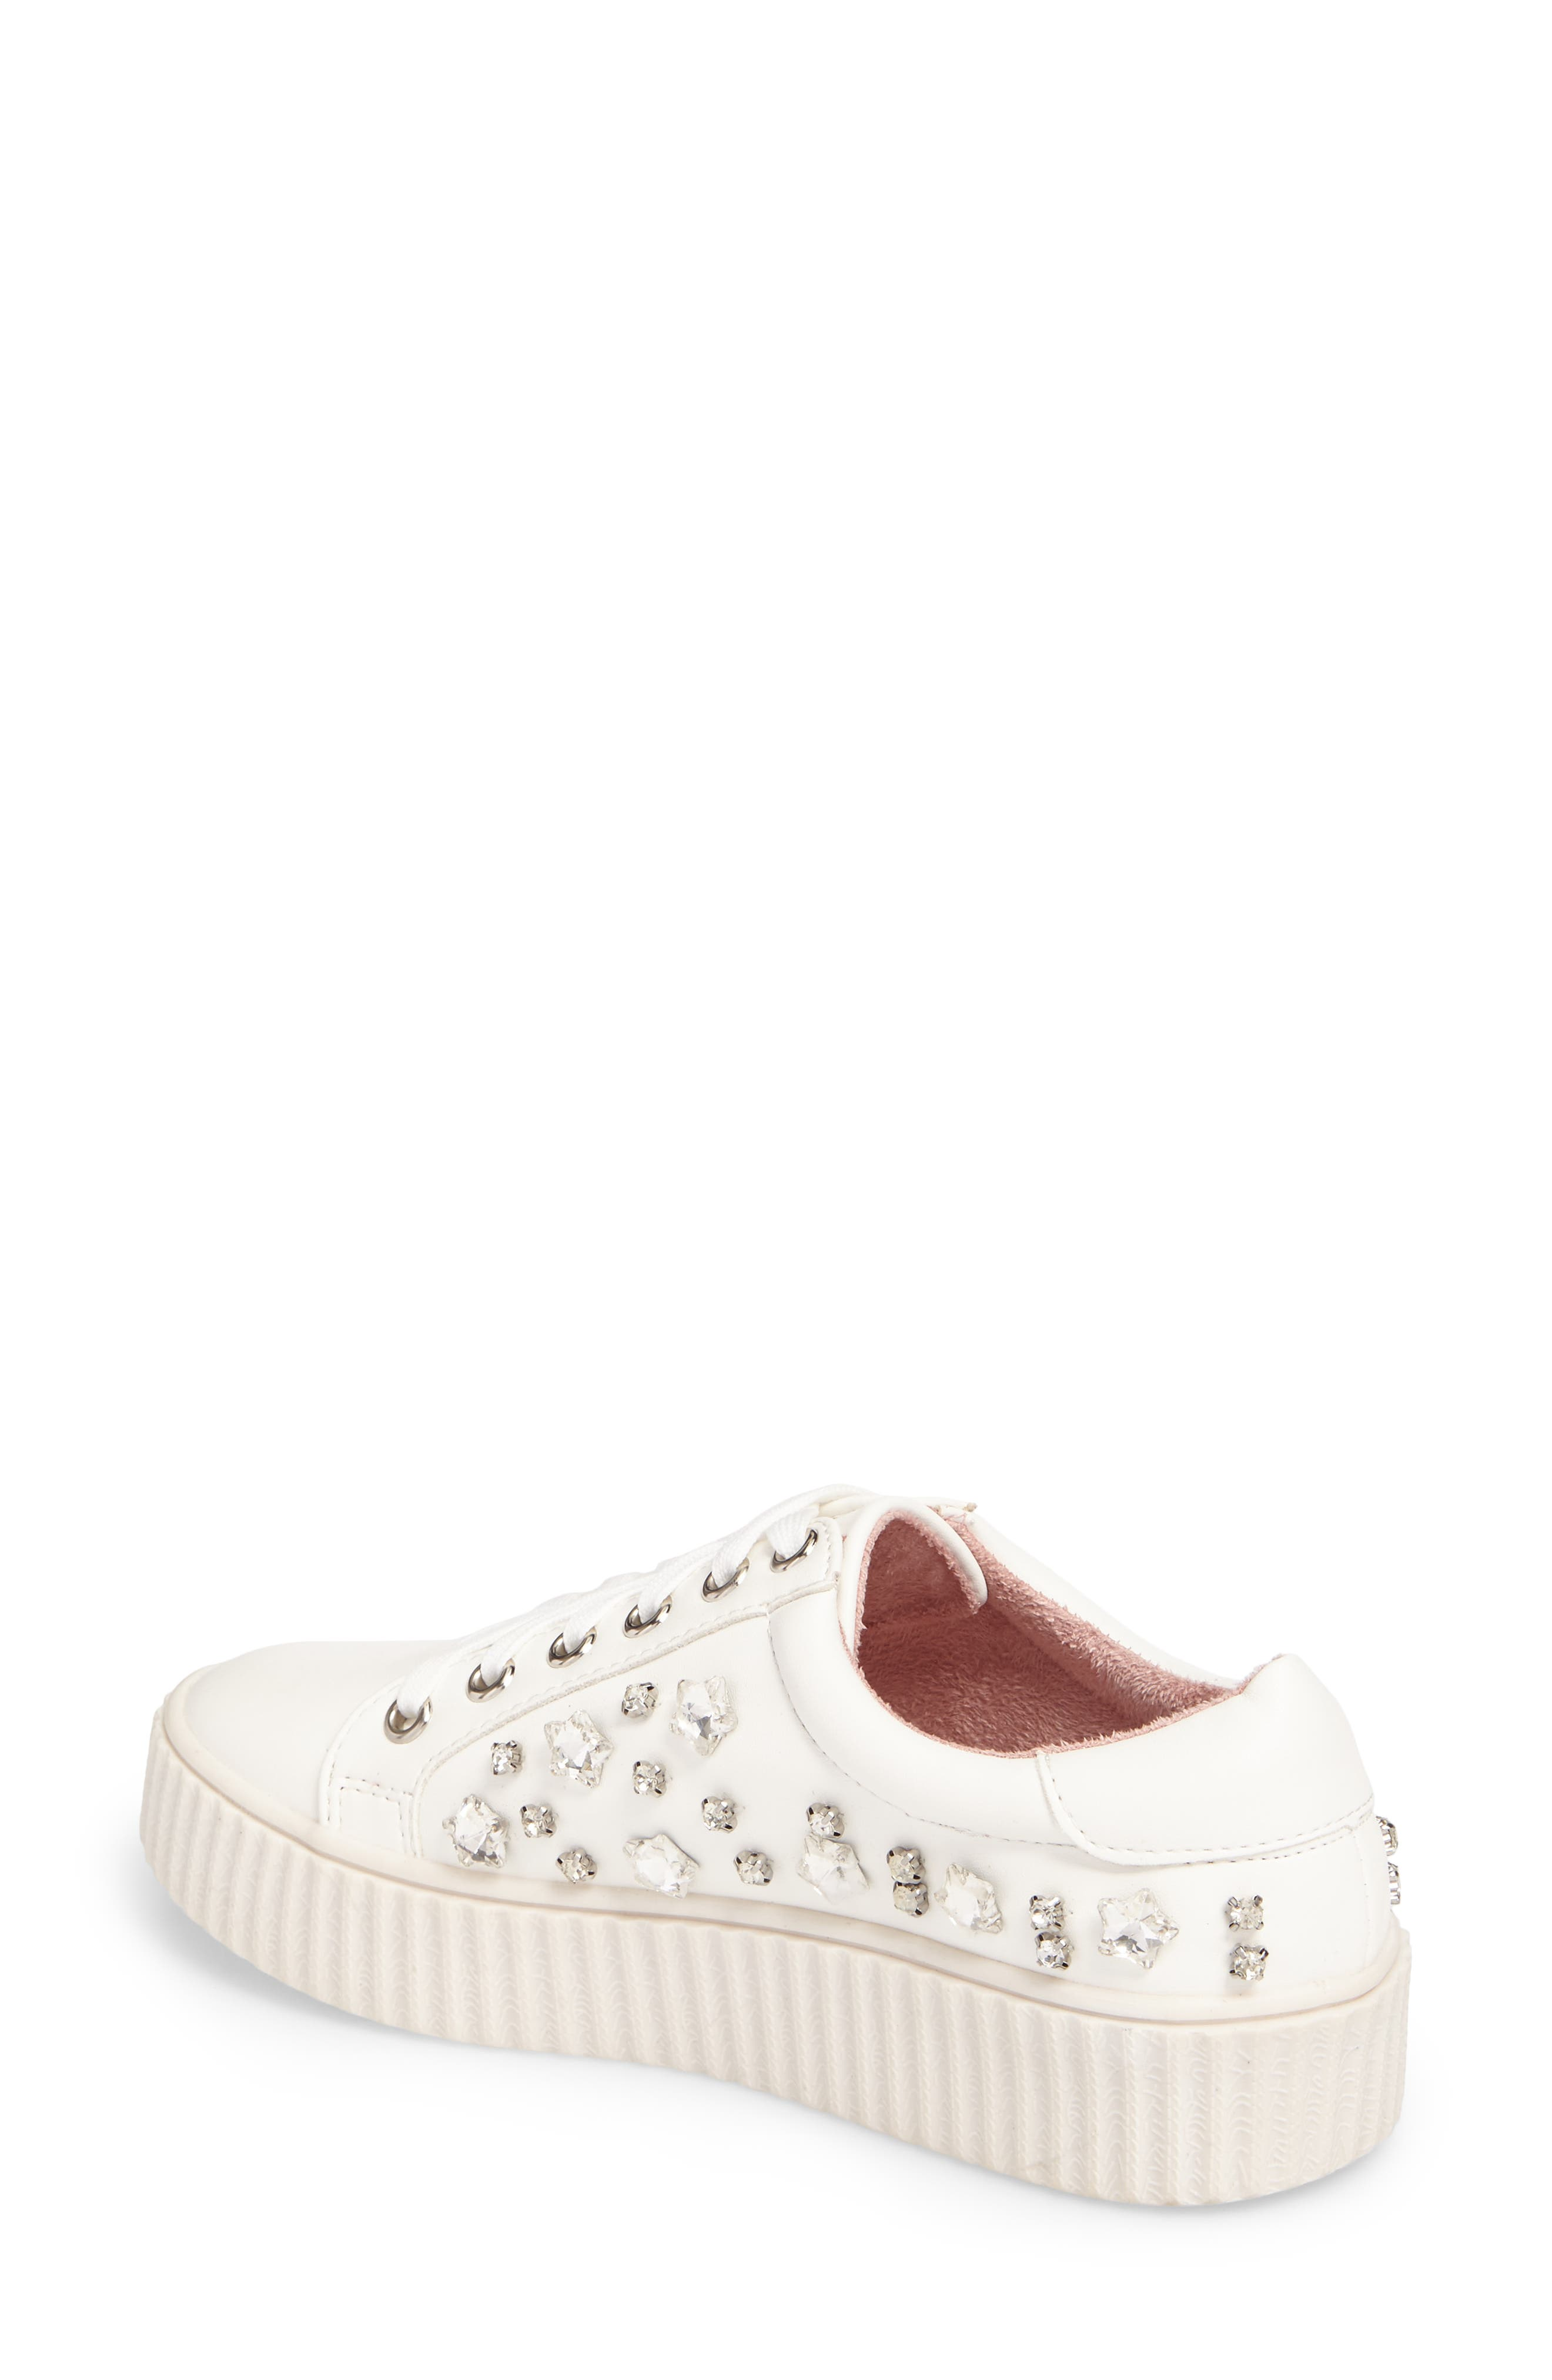 Pam Embellished Platform Sneaker,                             Alternate thumbnail 2, color,                             WHITE